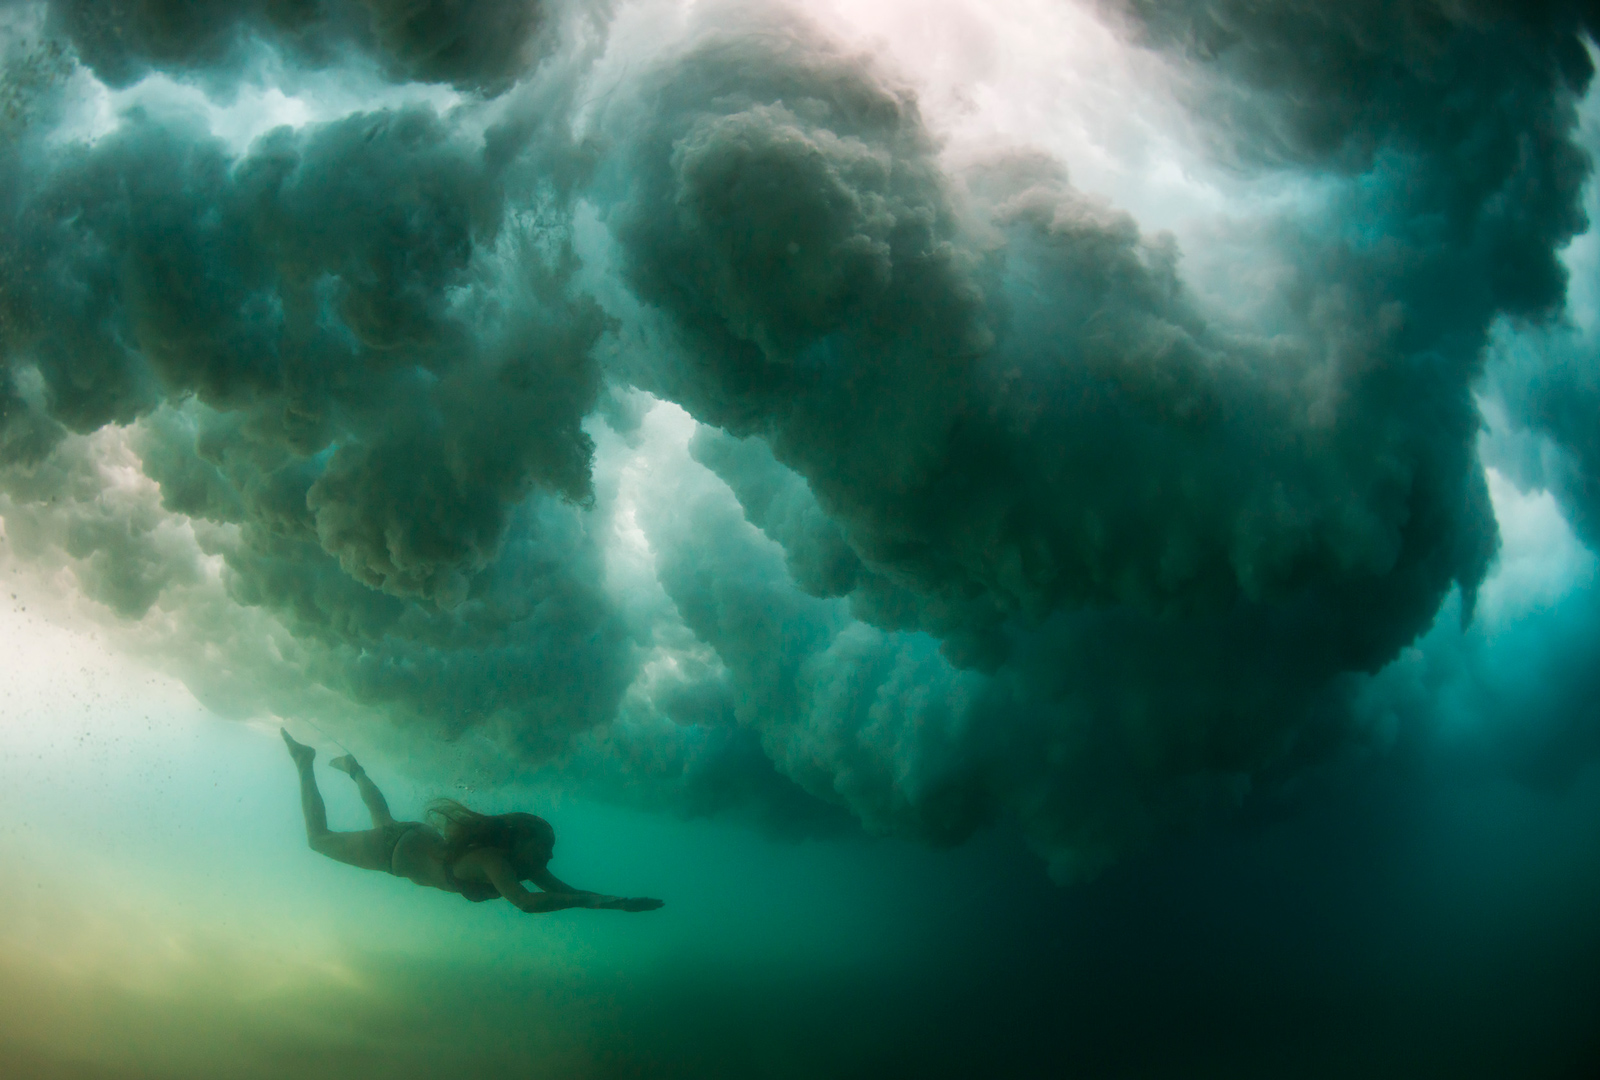 A swimmer dives underneath a breaking wave at Clansthal, South Africa ©Anthony Grote